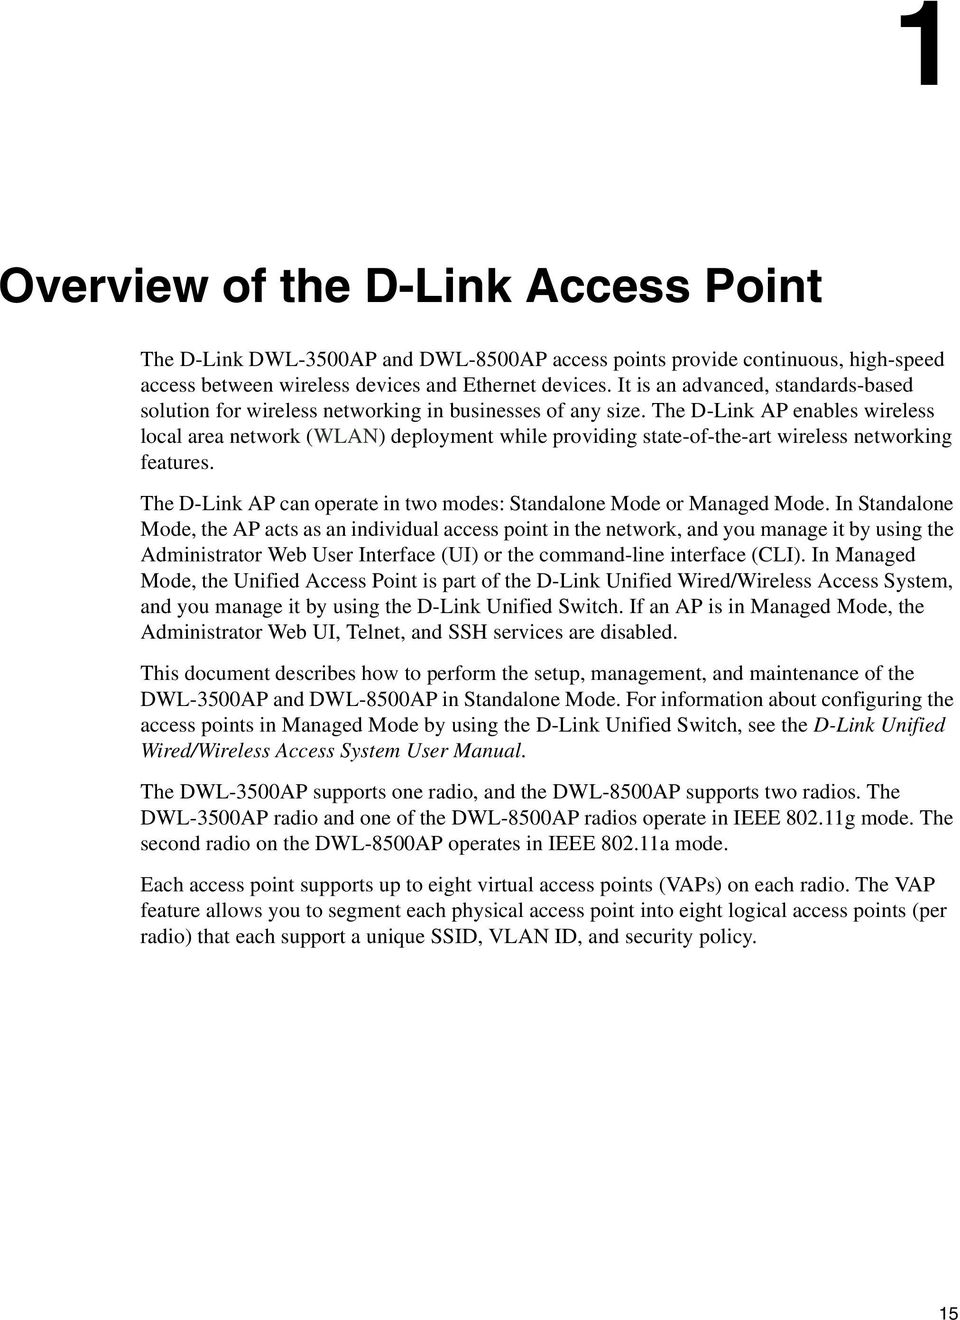 The D-Link AP enables wireless local area network (WLAN) deployment while providing state-of-the-art wireless networking features.